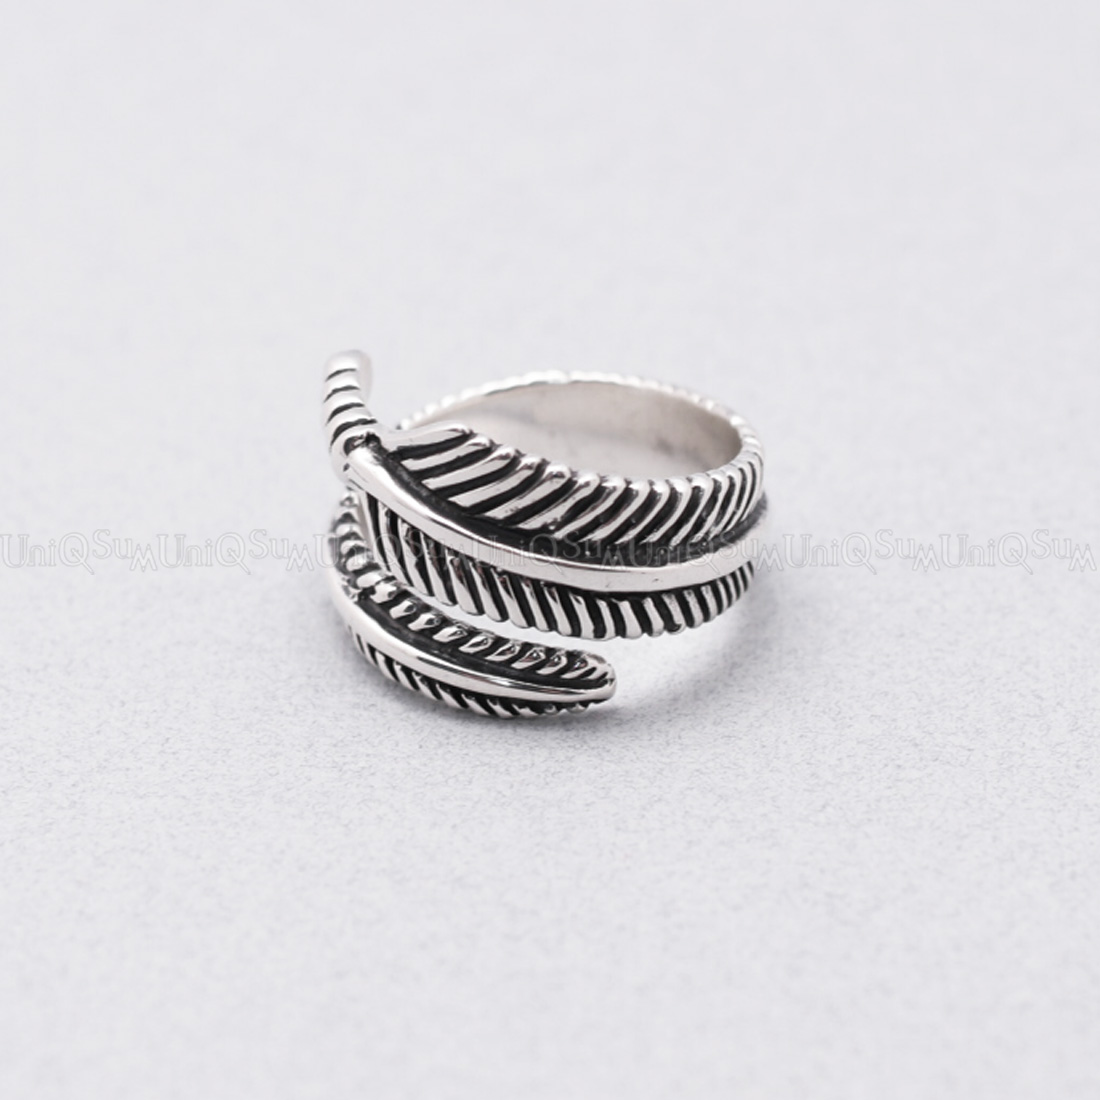 antique 925 sterling silver feather ring